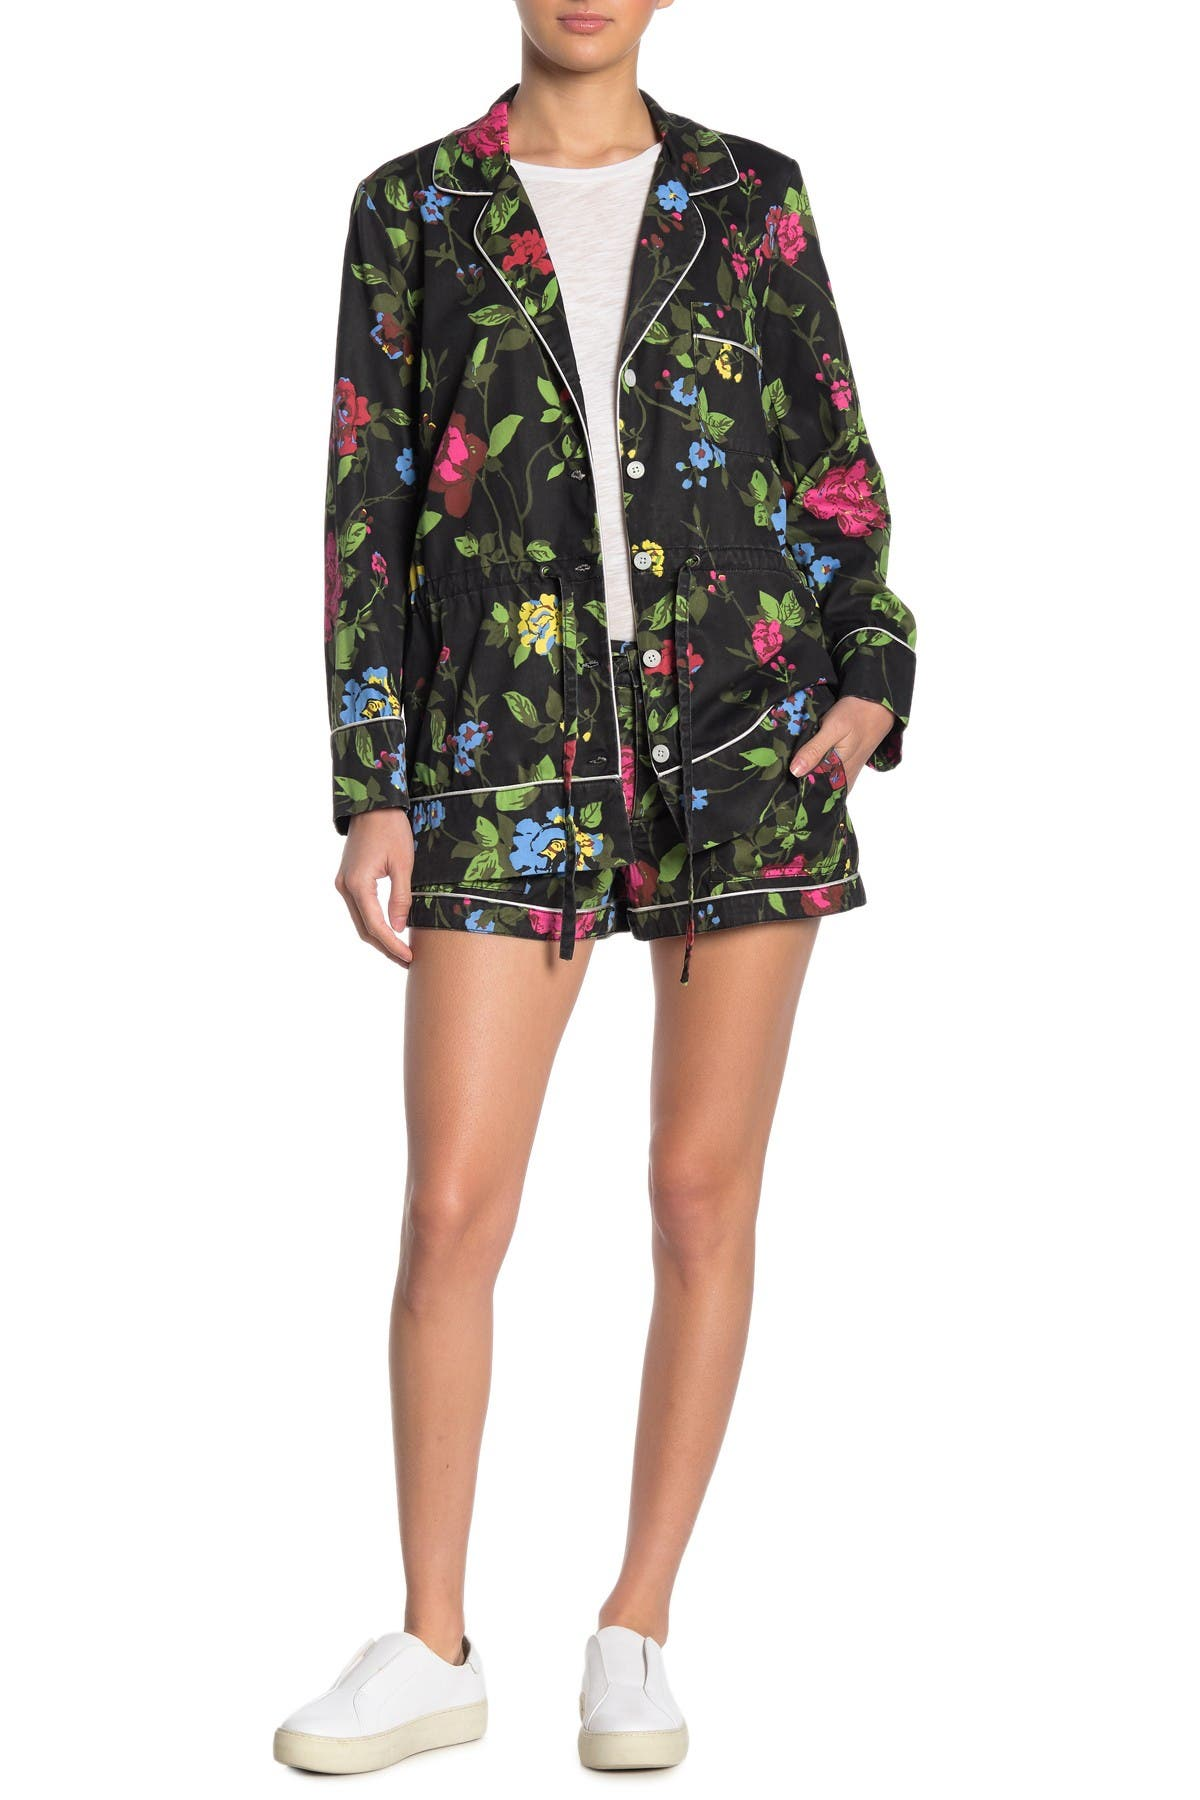 Image of PAM AND GELA Floral Printed Shorts